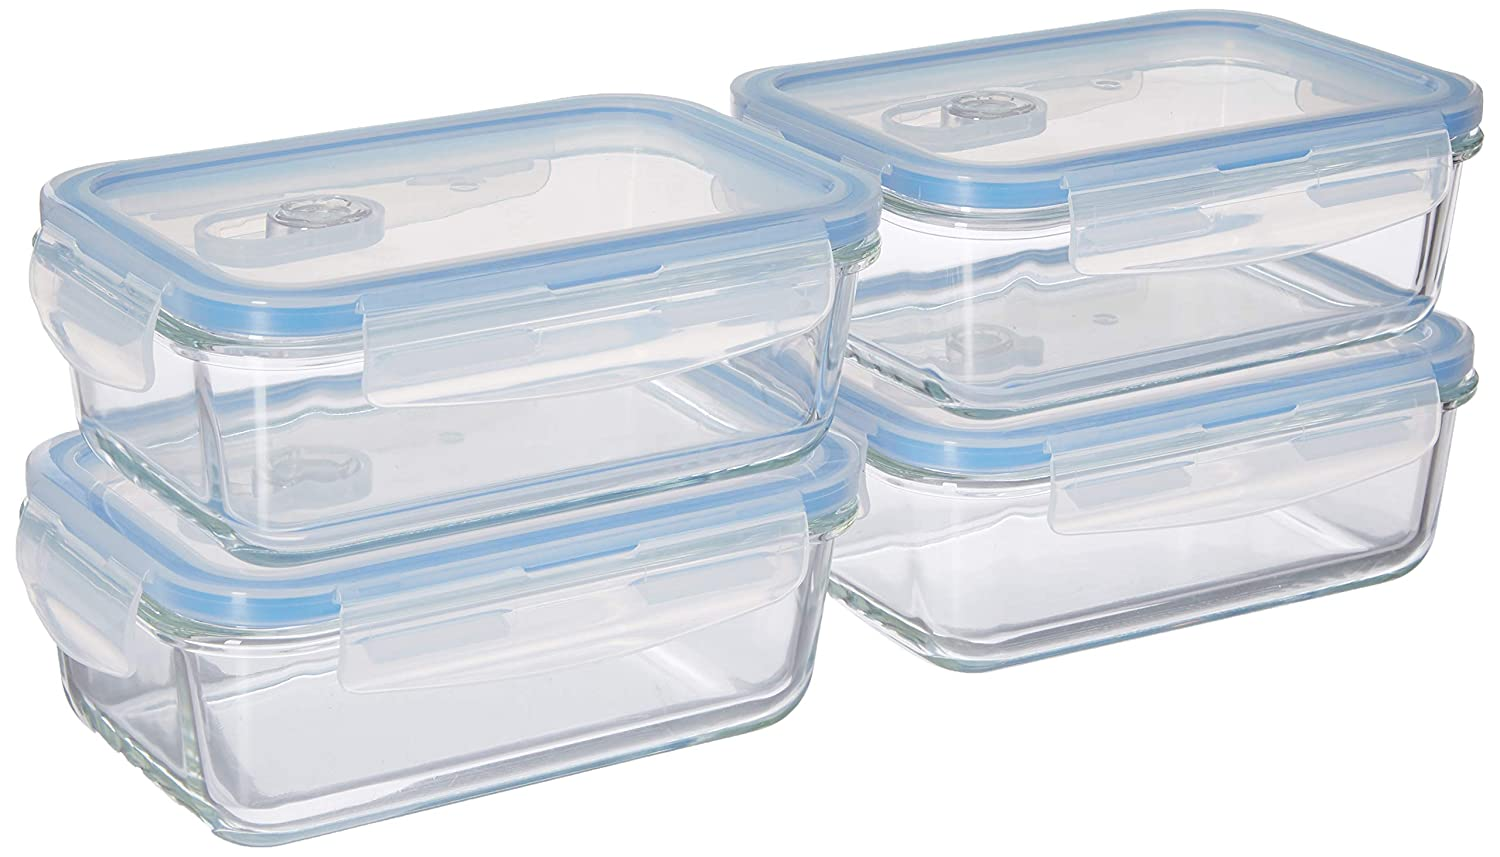 44e52405a694 Misc Home [Premium 4 Sets Glass Meal Prep Food Storage Container Snap  Locking Lid, Airtight, Microwave, Oven, Freezer, Dishwasher Safe (3.5 Cup,  28 ...